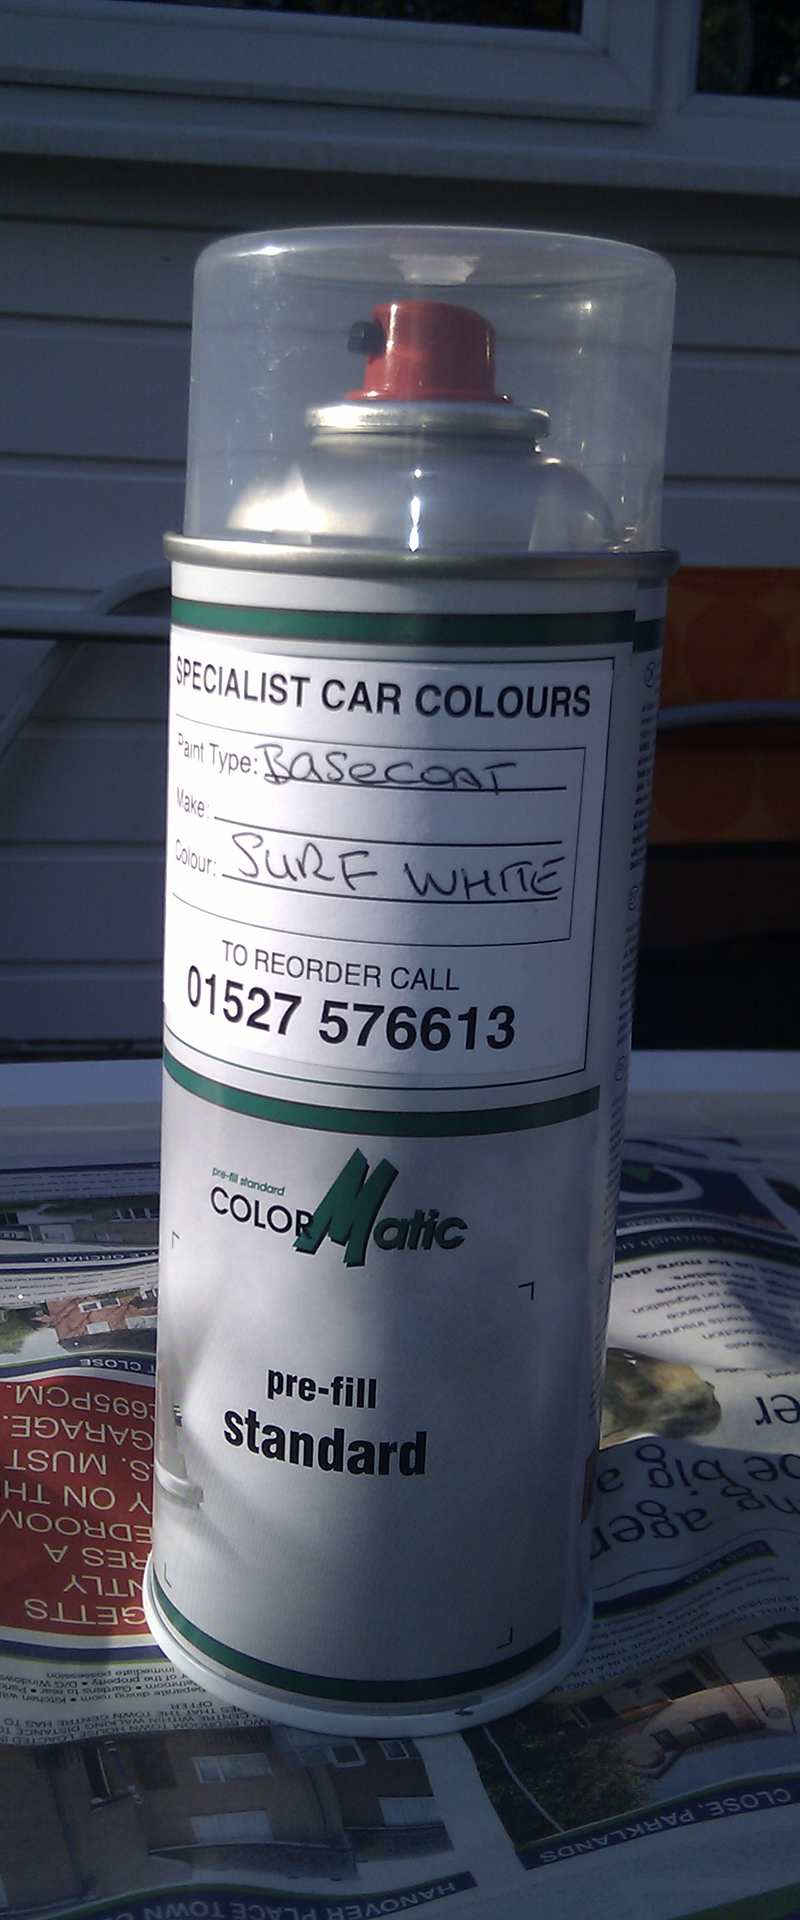 Colour matched paint